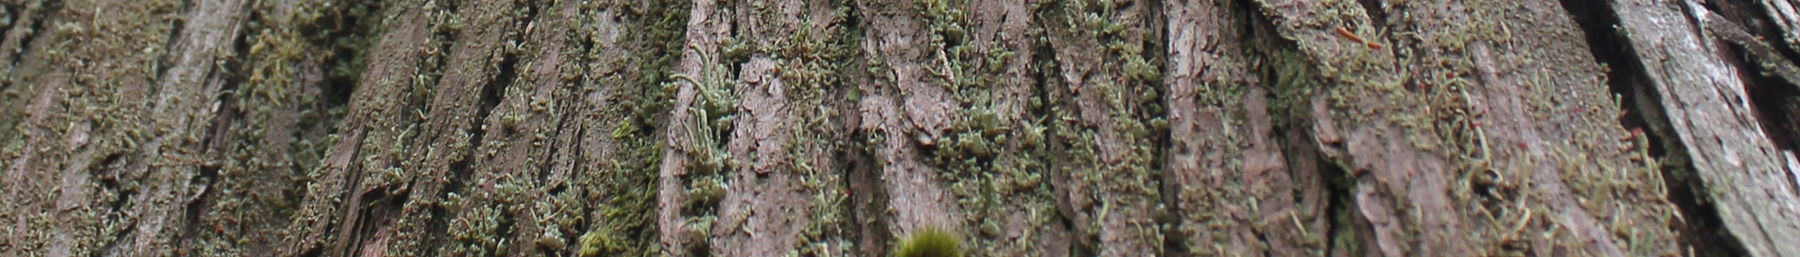 Wikivoyage page banner mossy tree bark NW.jpg